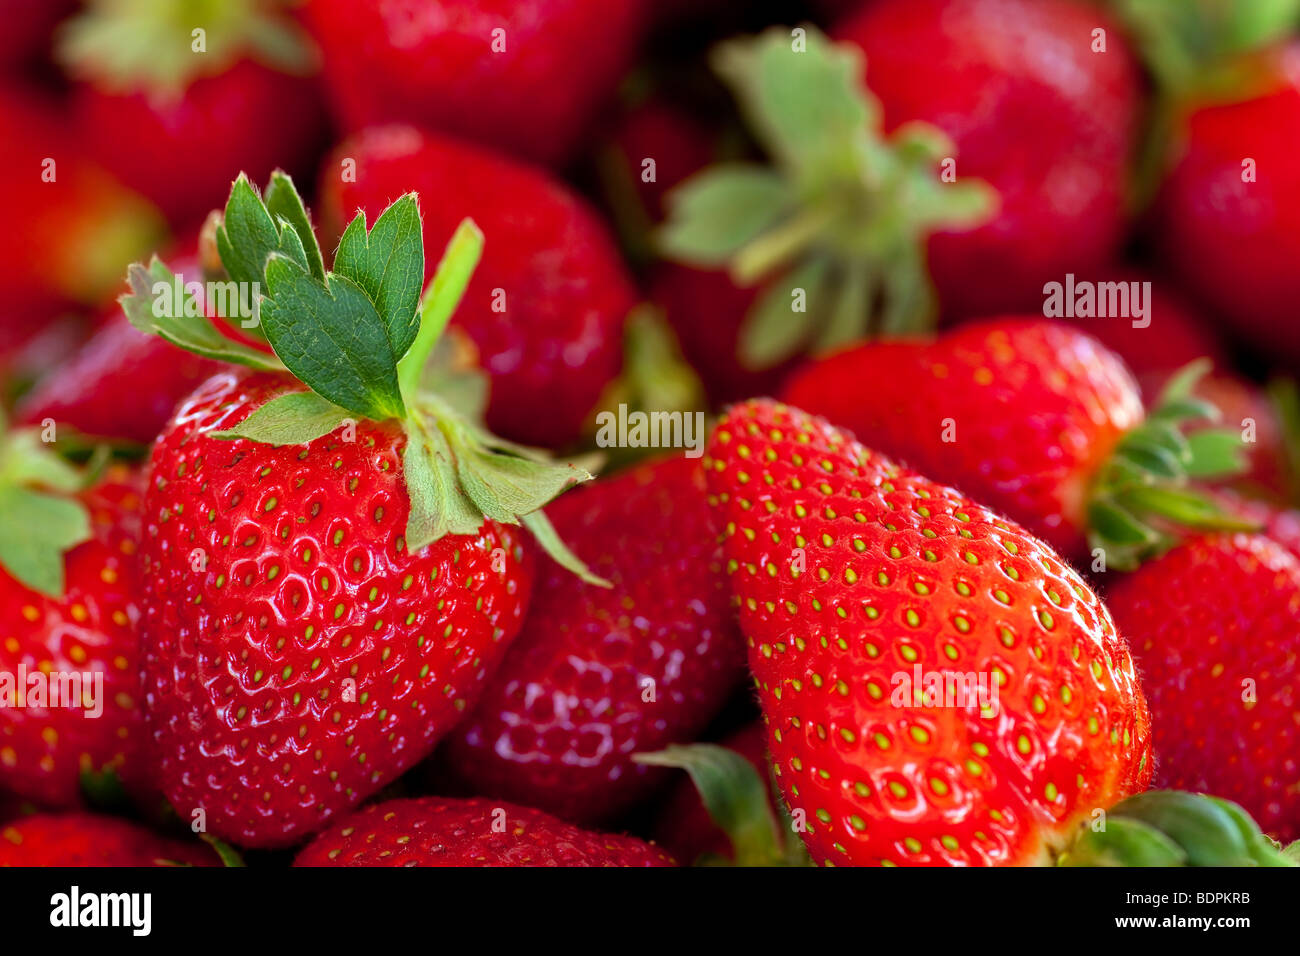 ripe red strawberries with stems and leaves - Stock Image